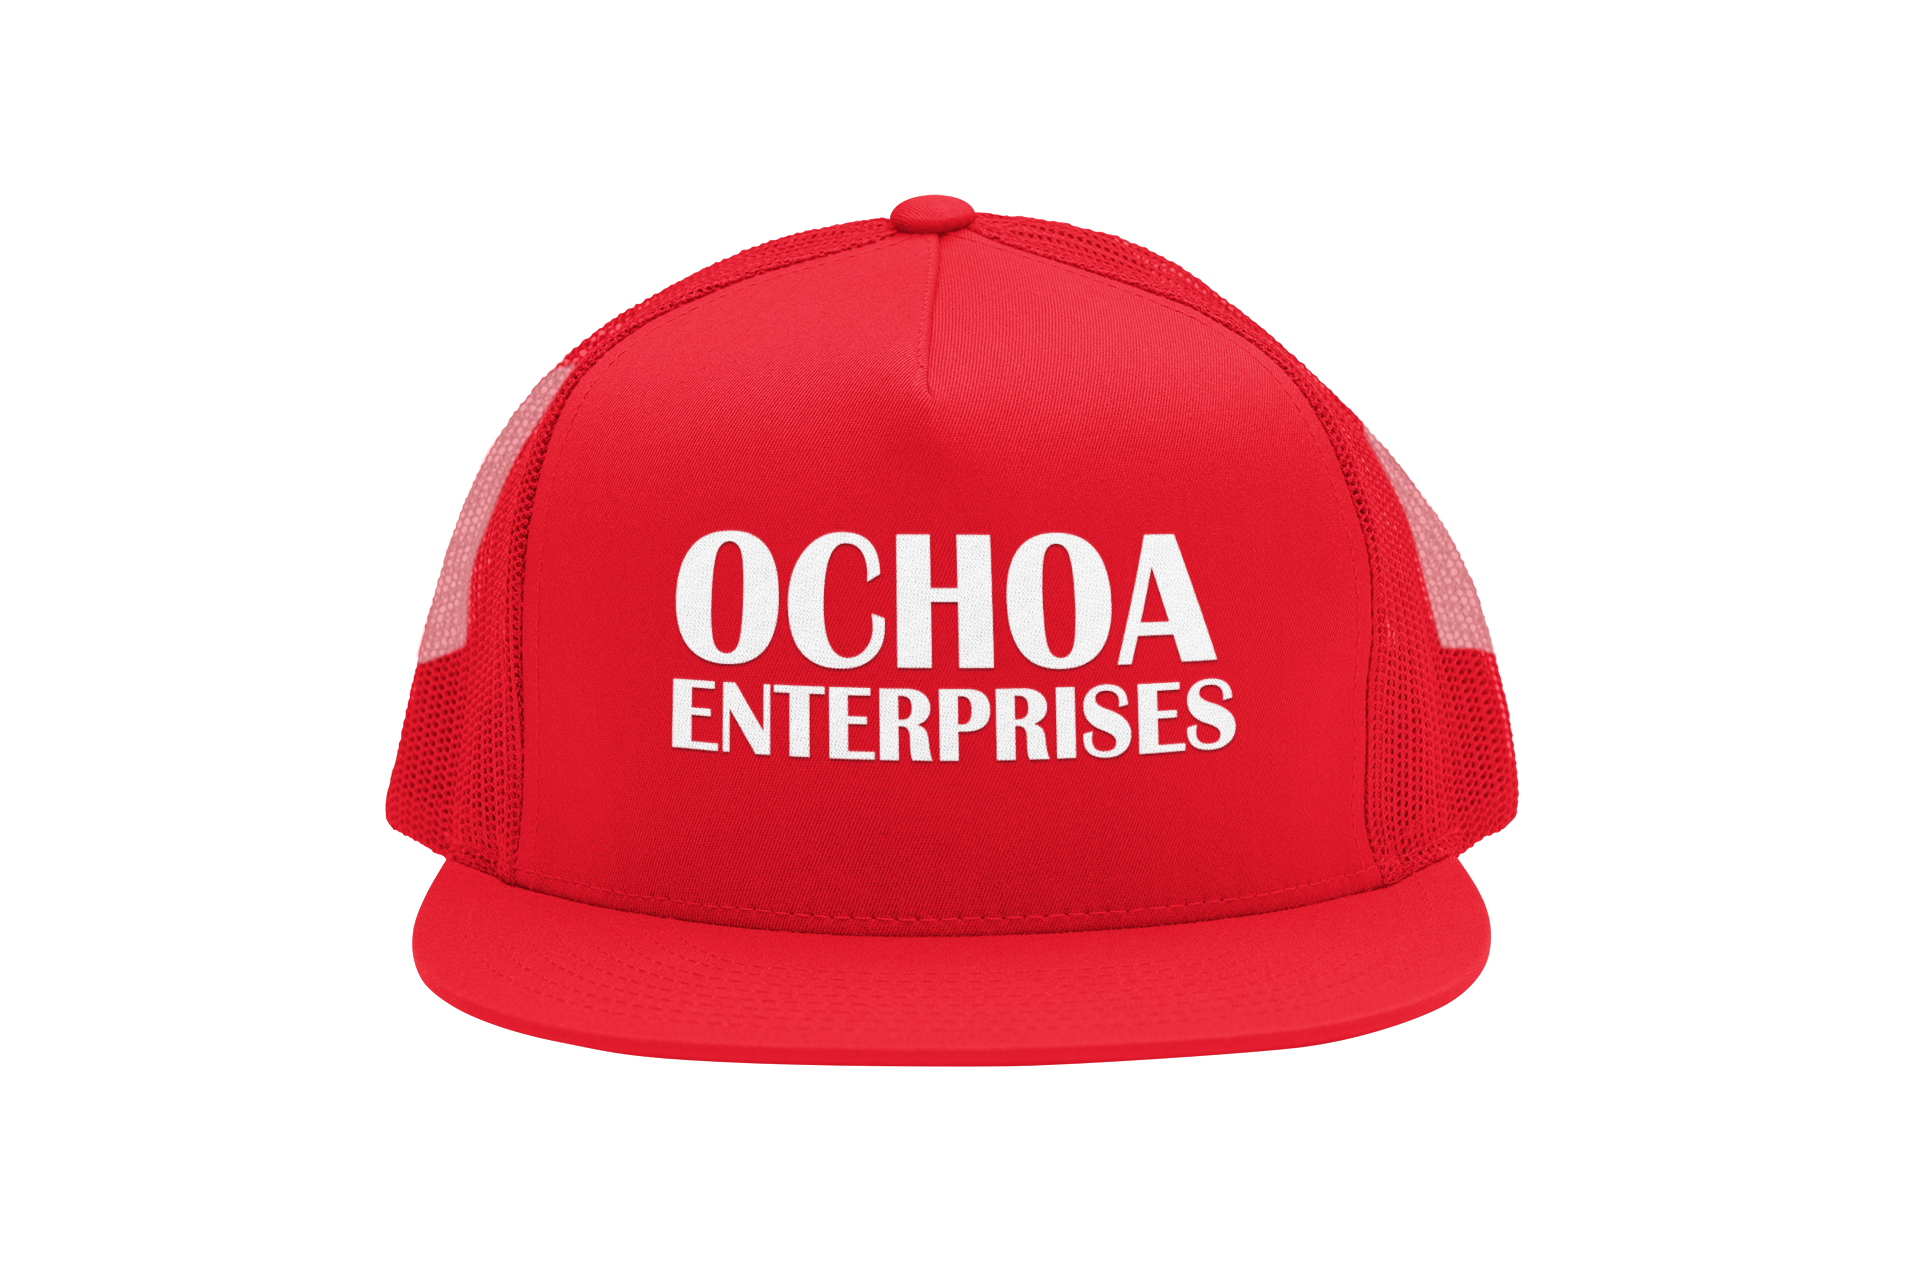 Ochoa Enterprises - Trucker Hat